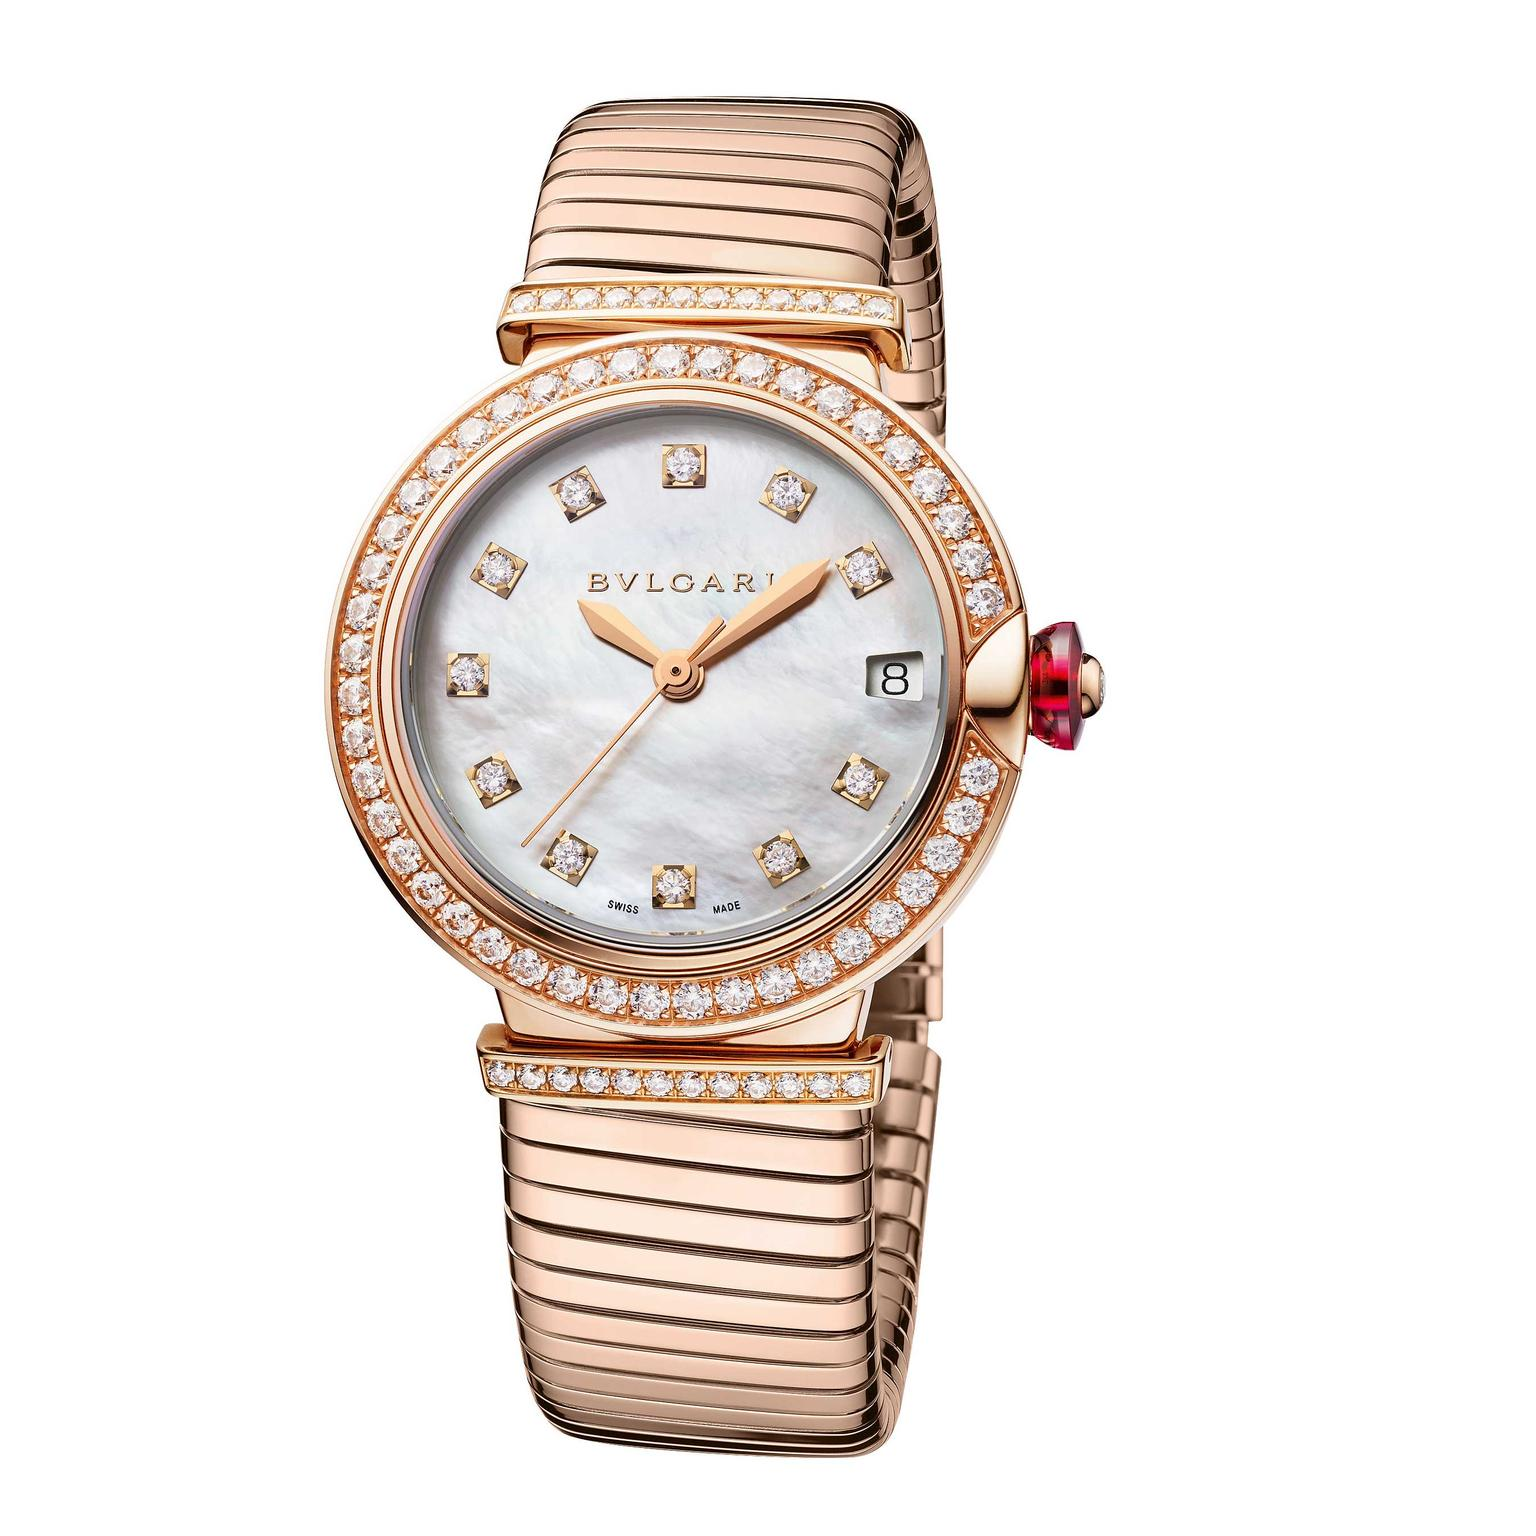 Bulgari Lvcea Tubogas 33mm rose gold and diamond automatic women's watch 2018